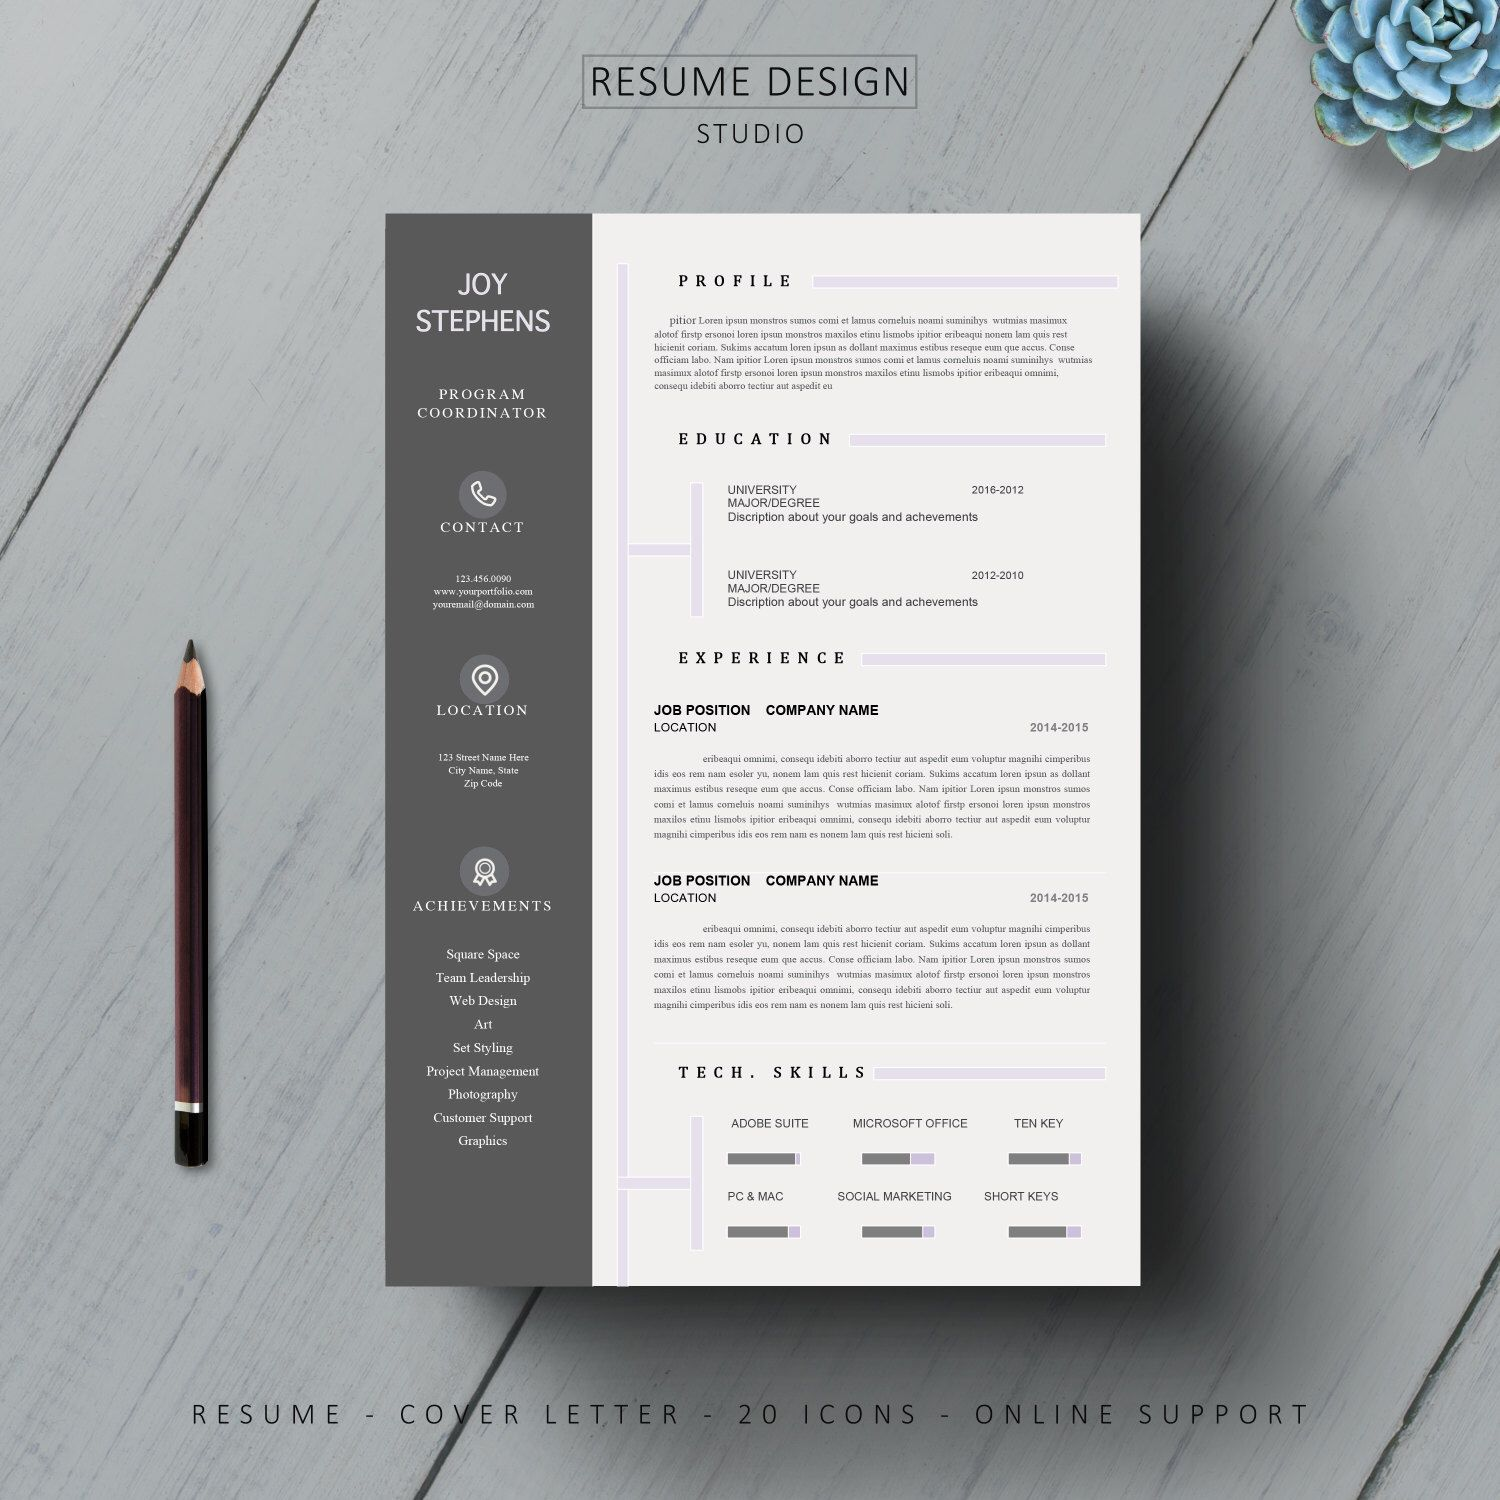 Ms Word For Sale Complete Resume Templatecover Letter Modern Tempate Bundleinstand .